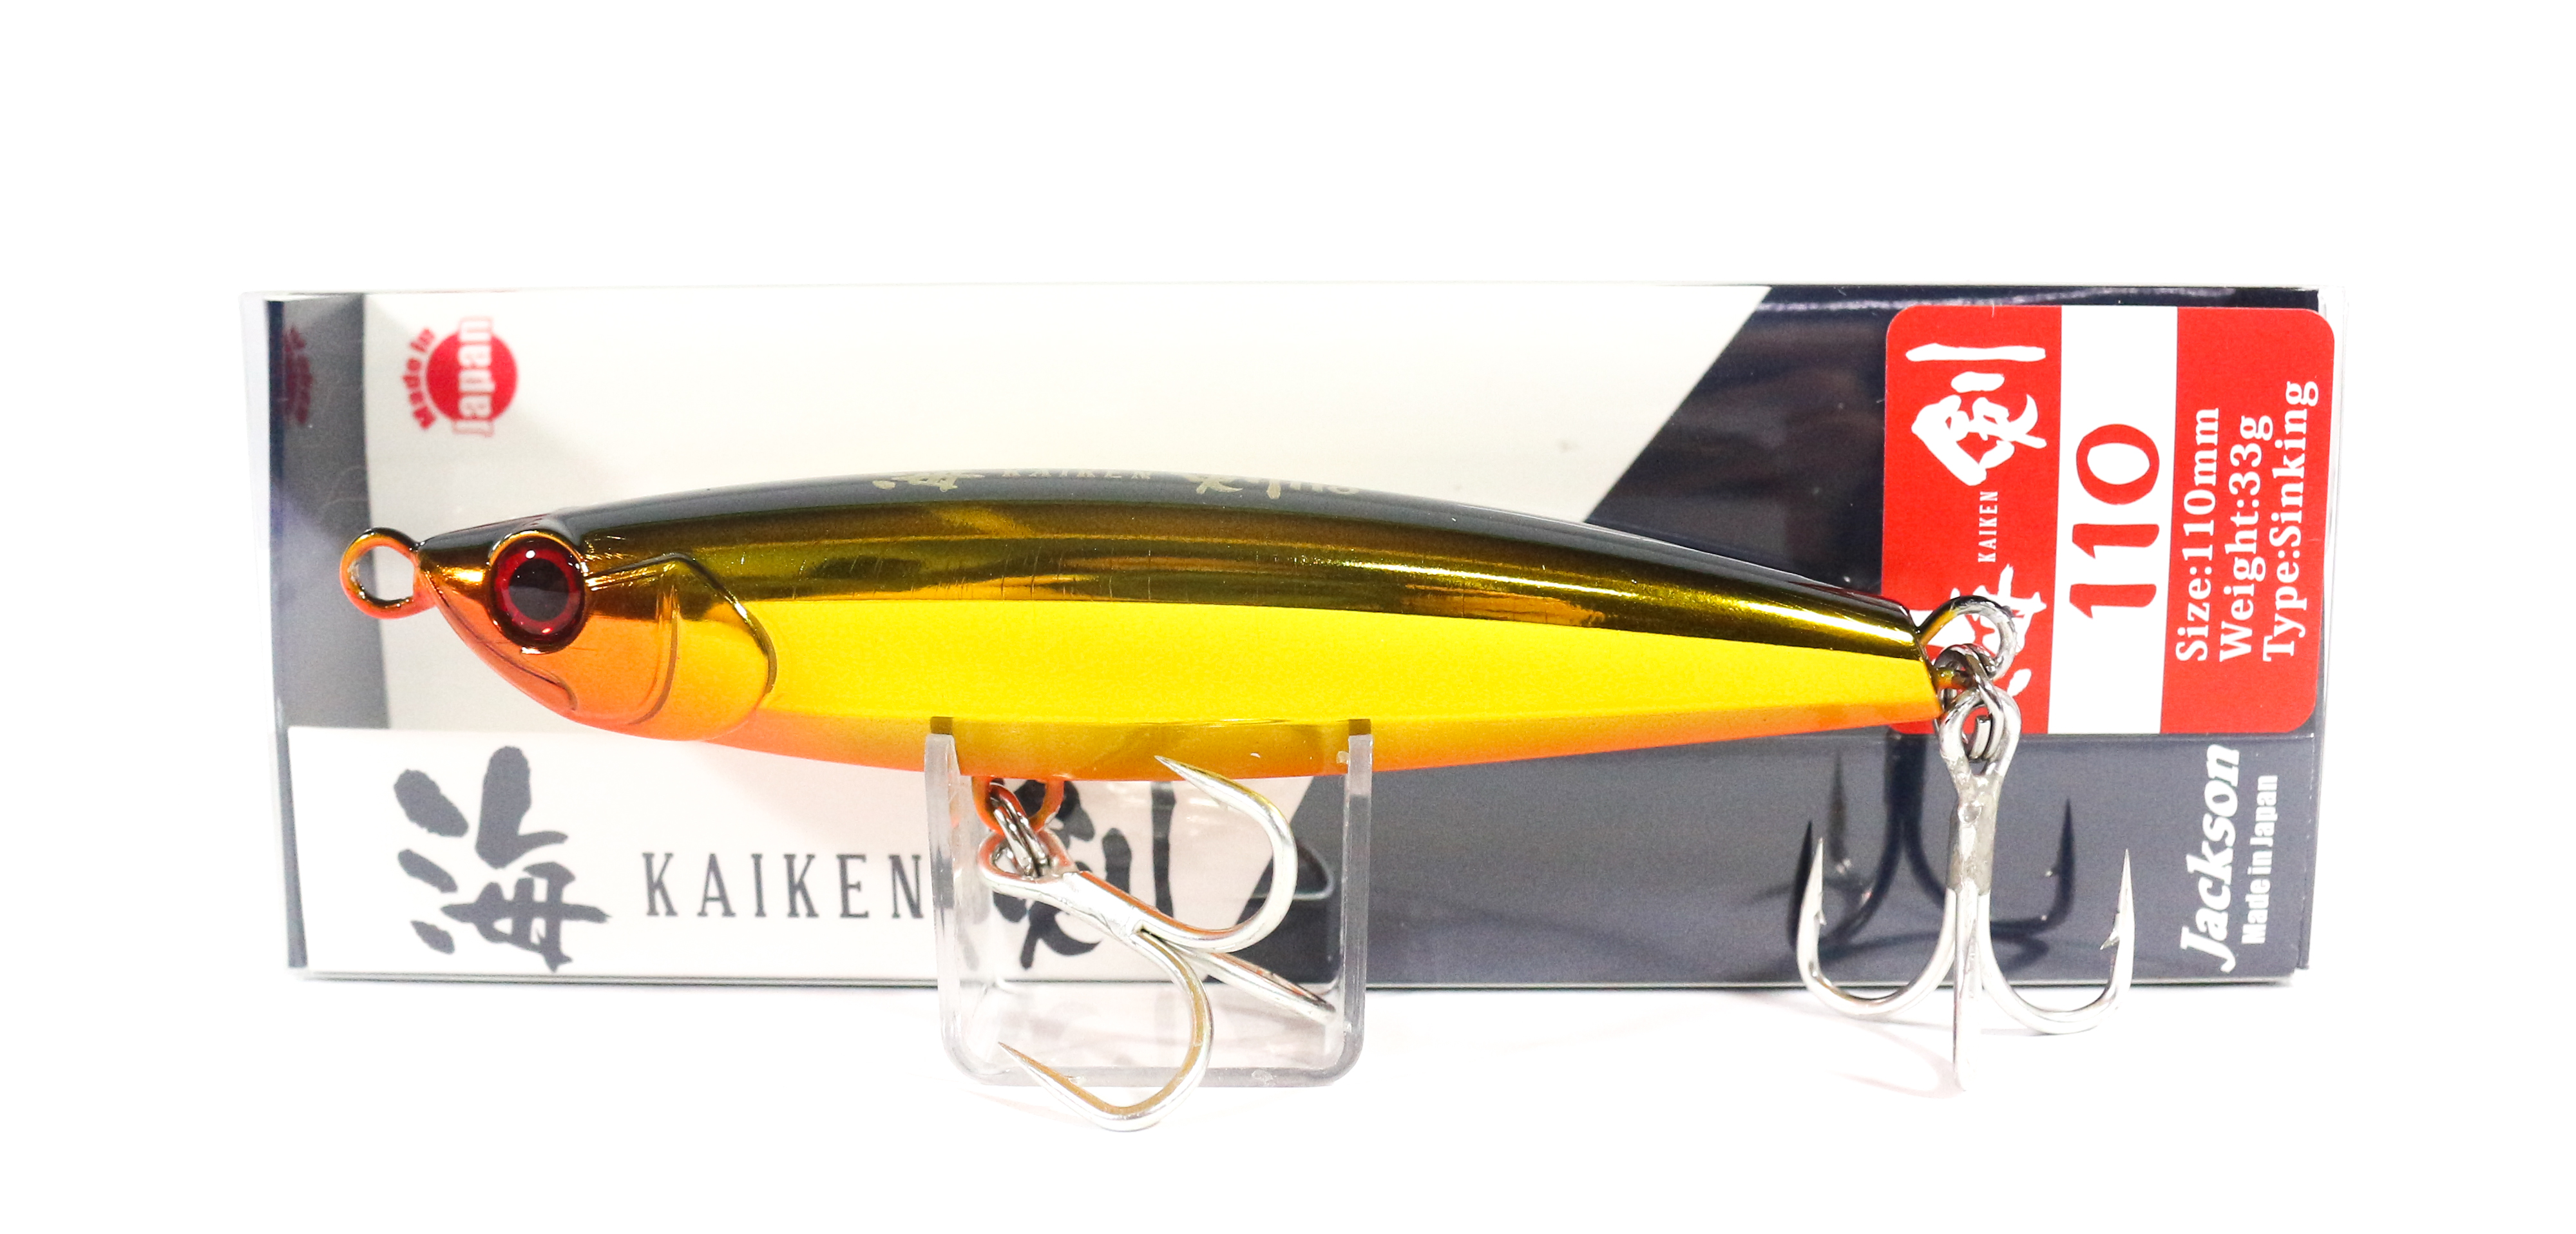 2082 Jackson Kaiken 140 Pencil Sinking Lure 48 grams SAPK